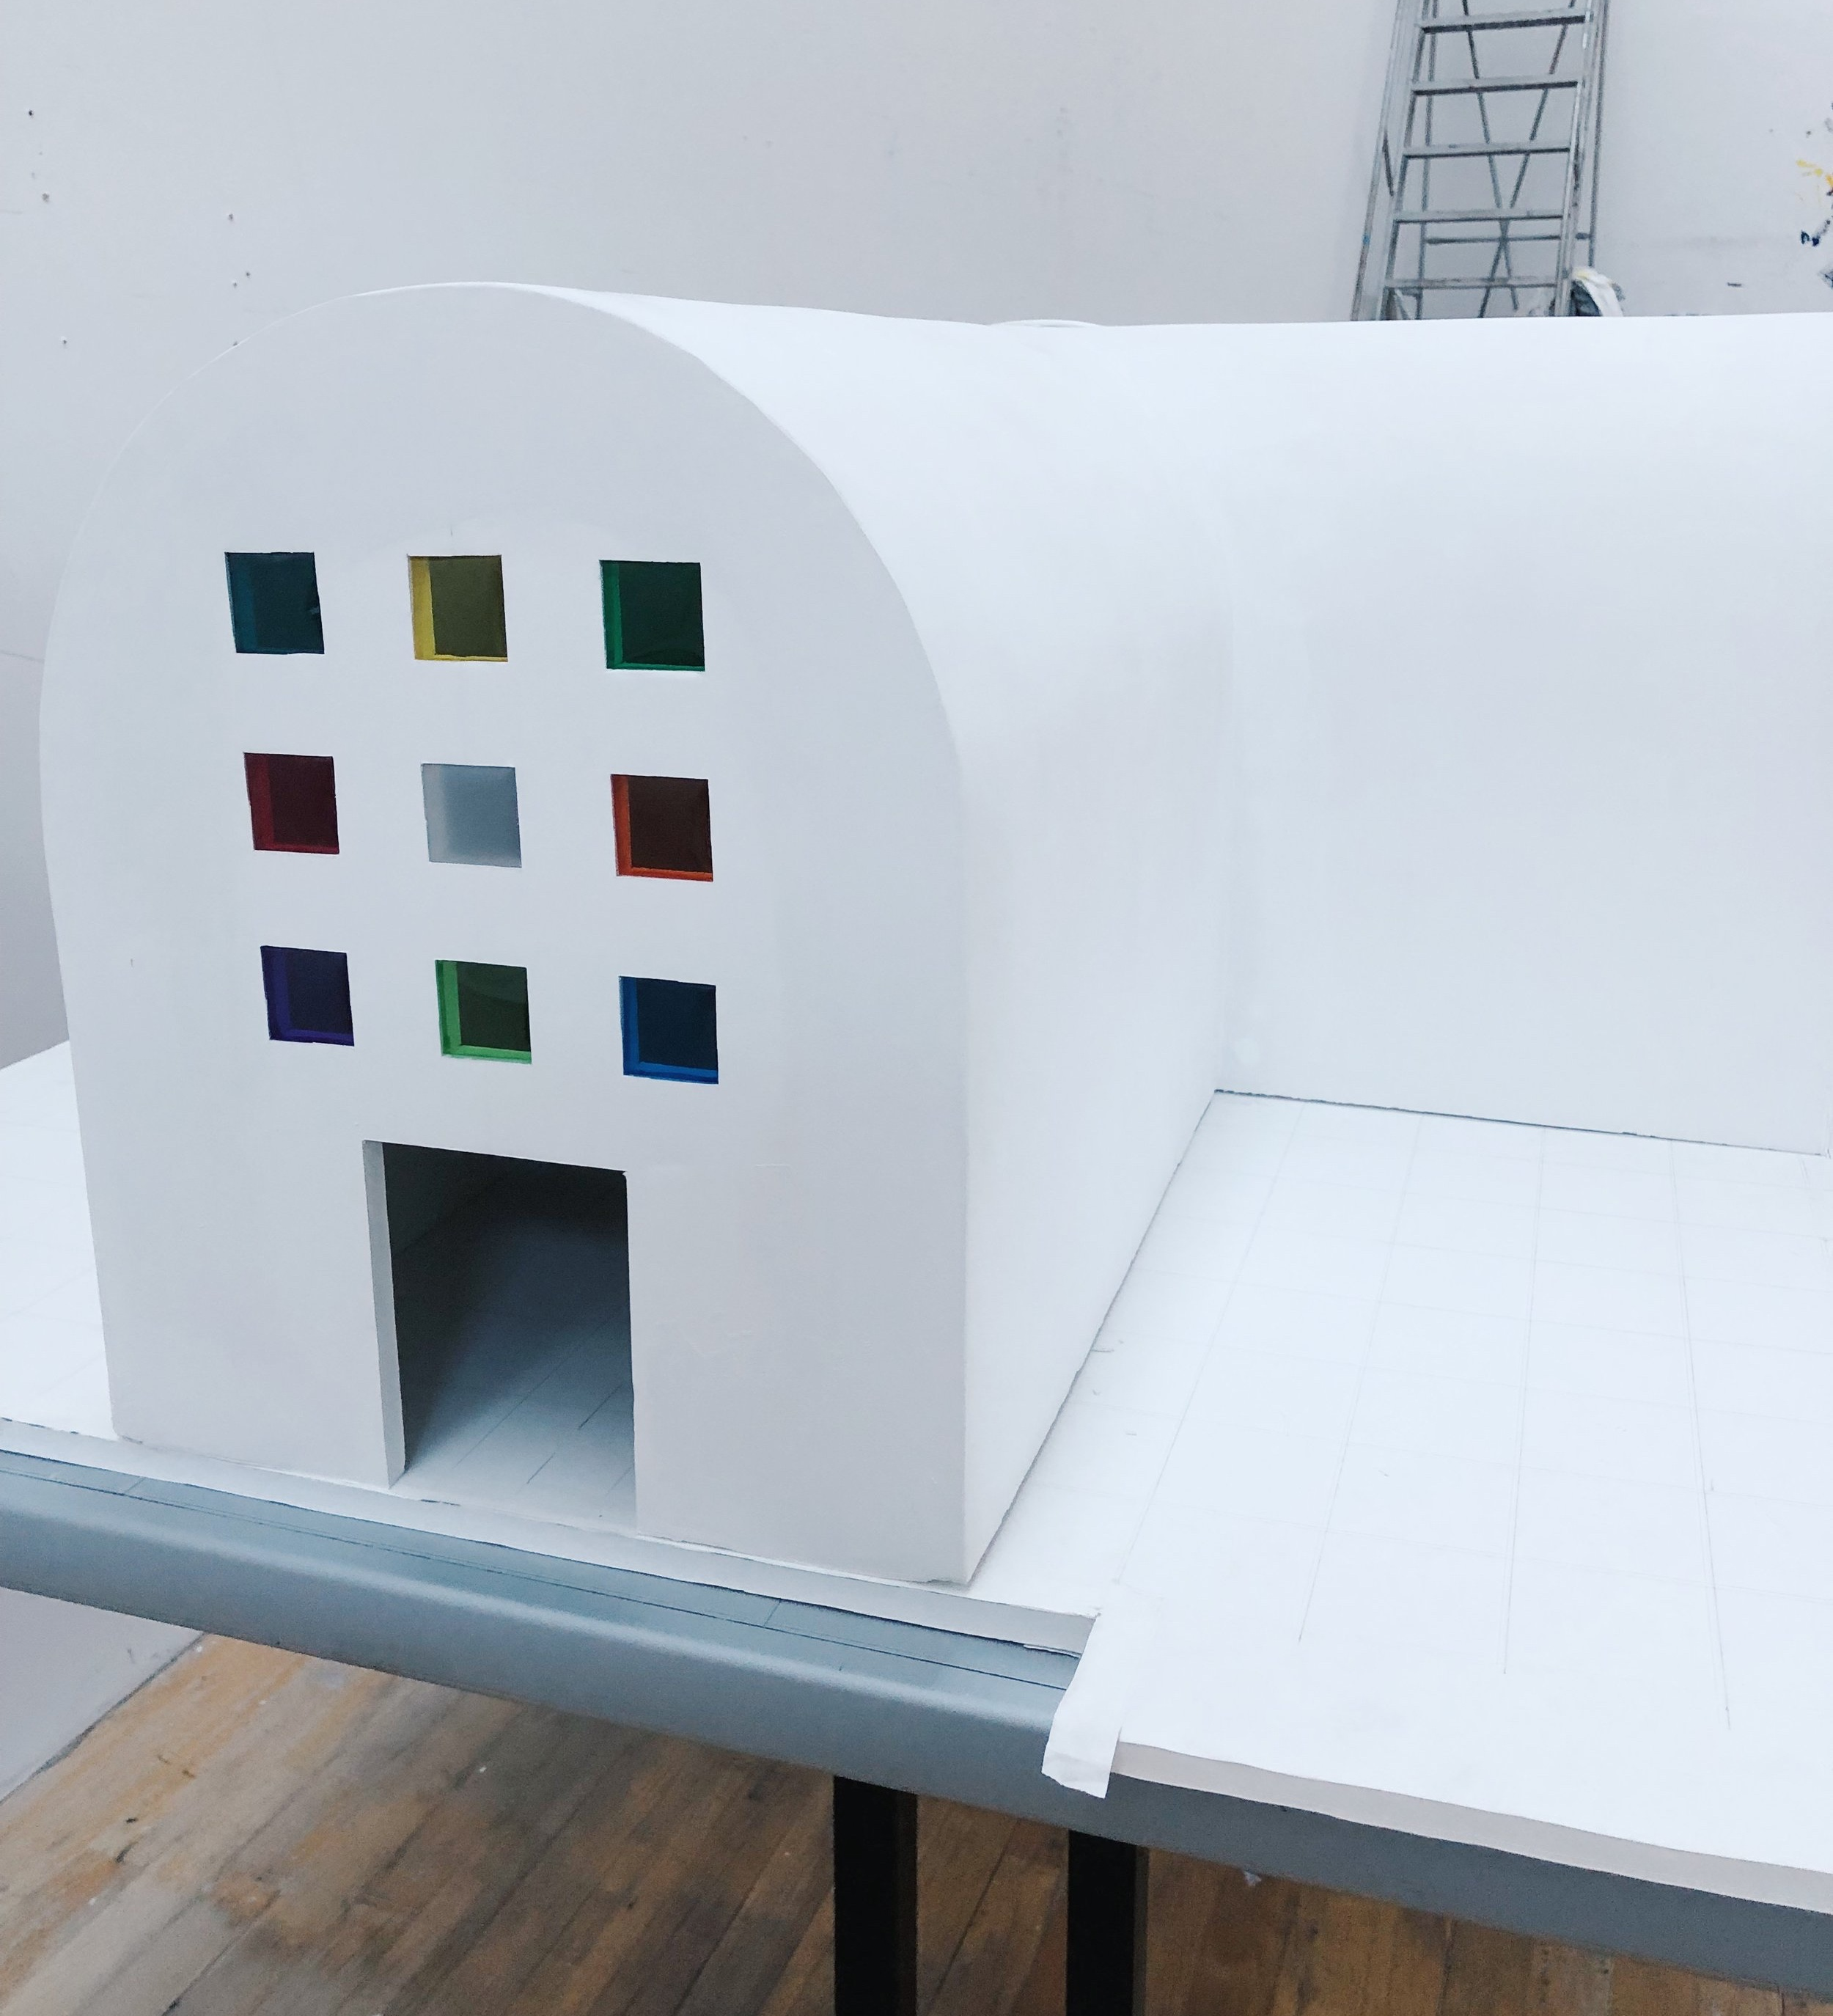 Ellsworth Kelly's  Austin , structural rendering. This work was the artist's final work and only building, which opened in February at the University of Texas's Blanton Museum of Art.